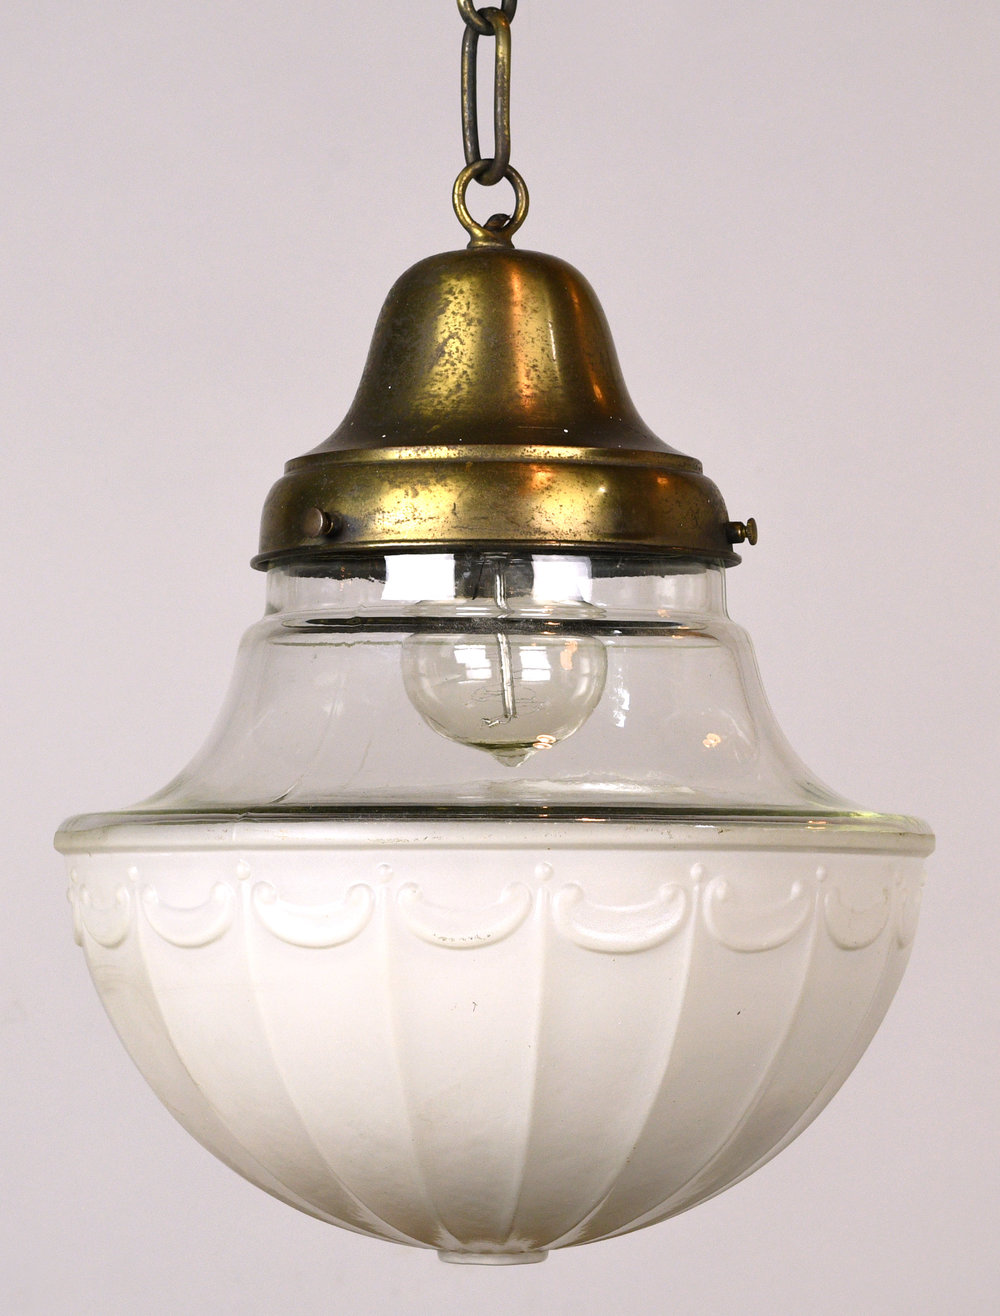 47843-brass-pendant-with-shade-closer-up.jpg